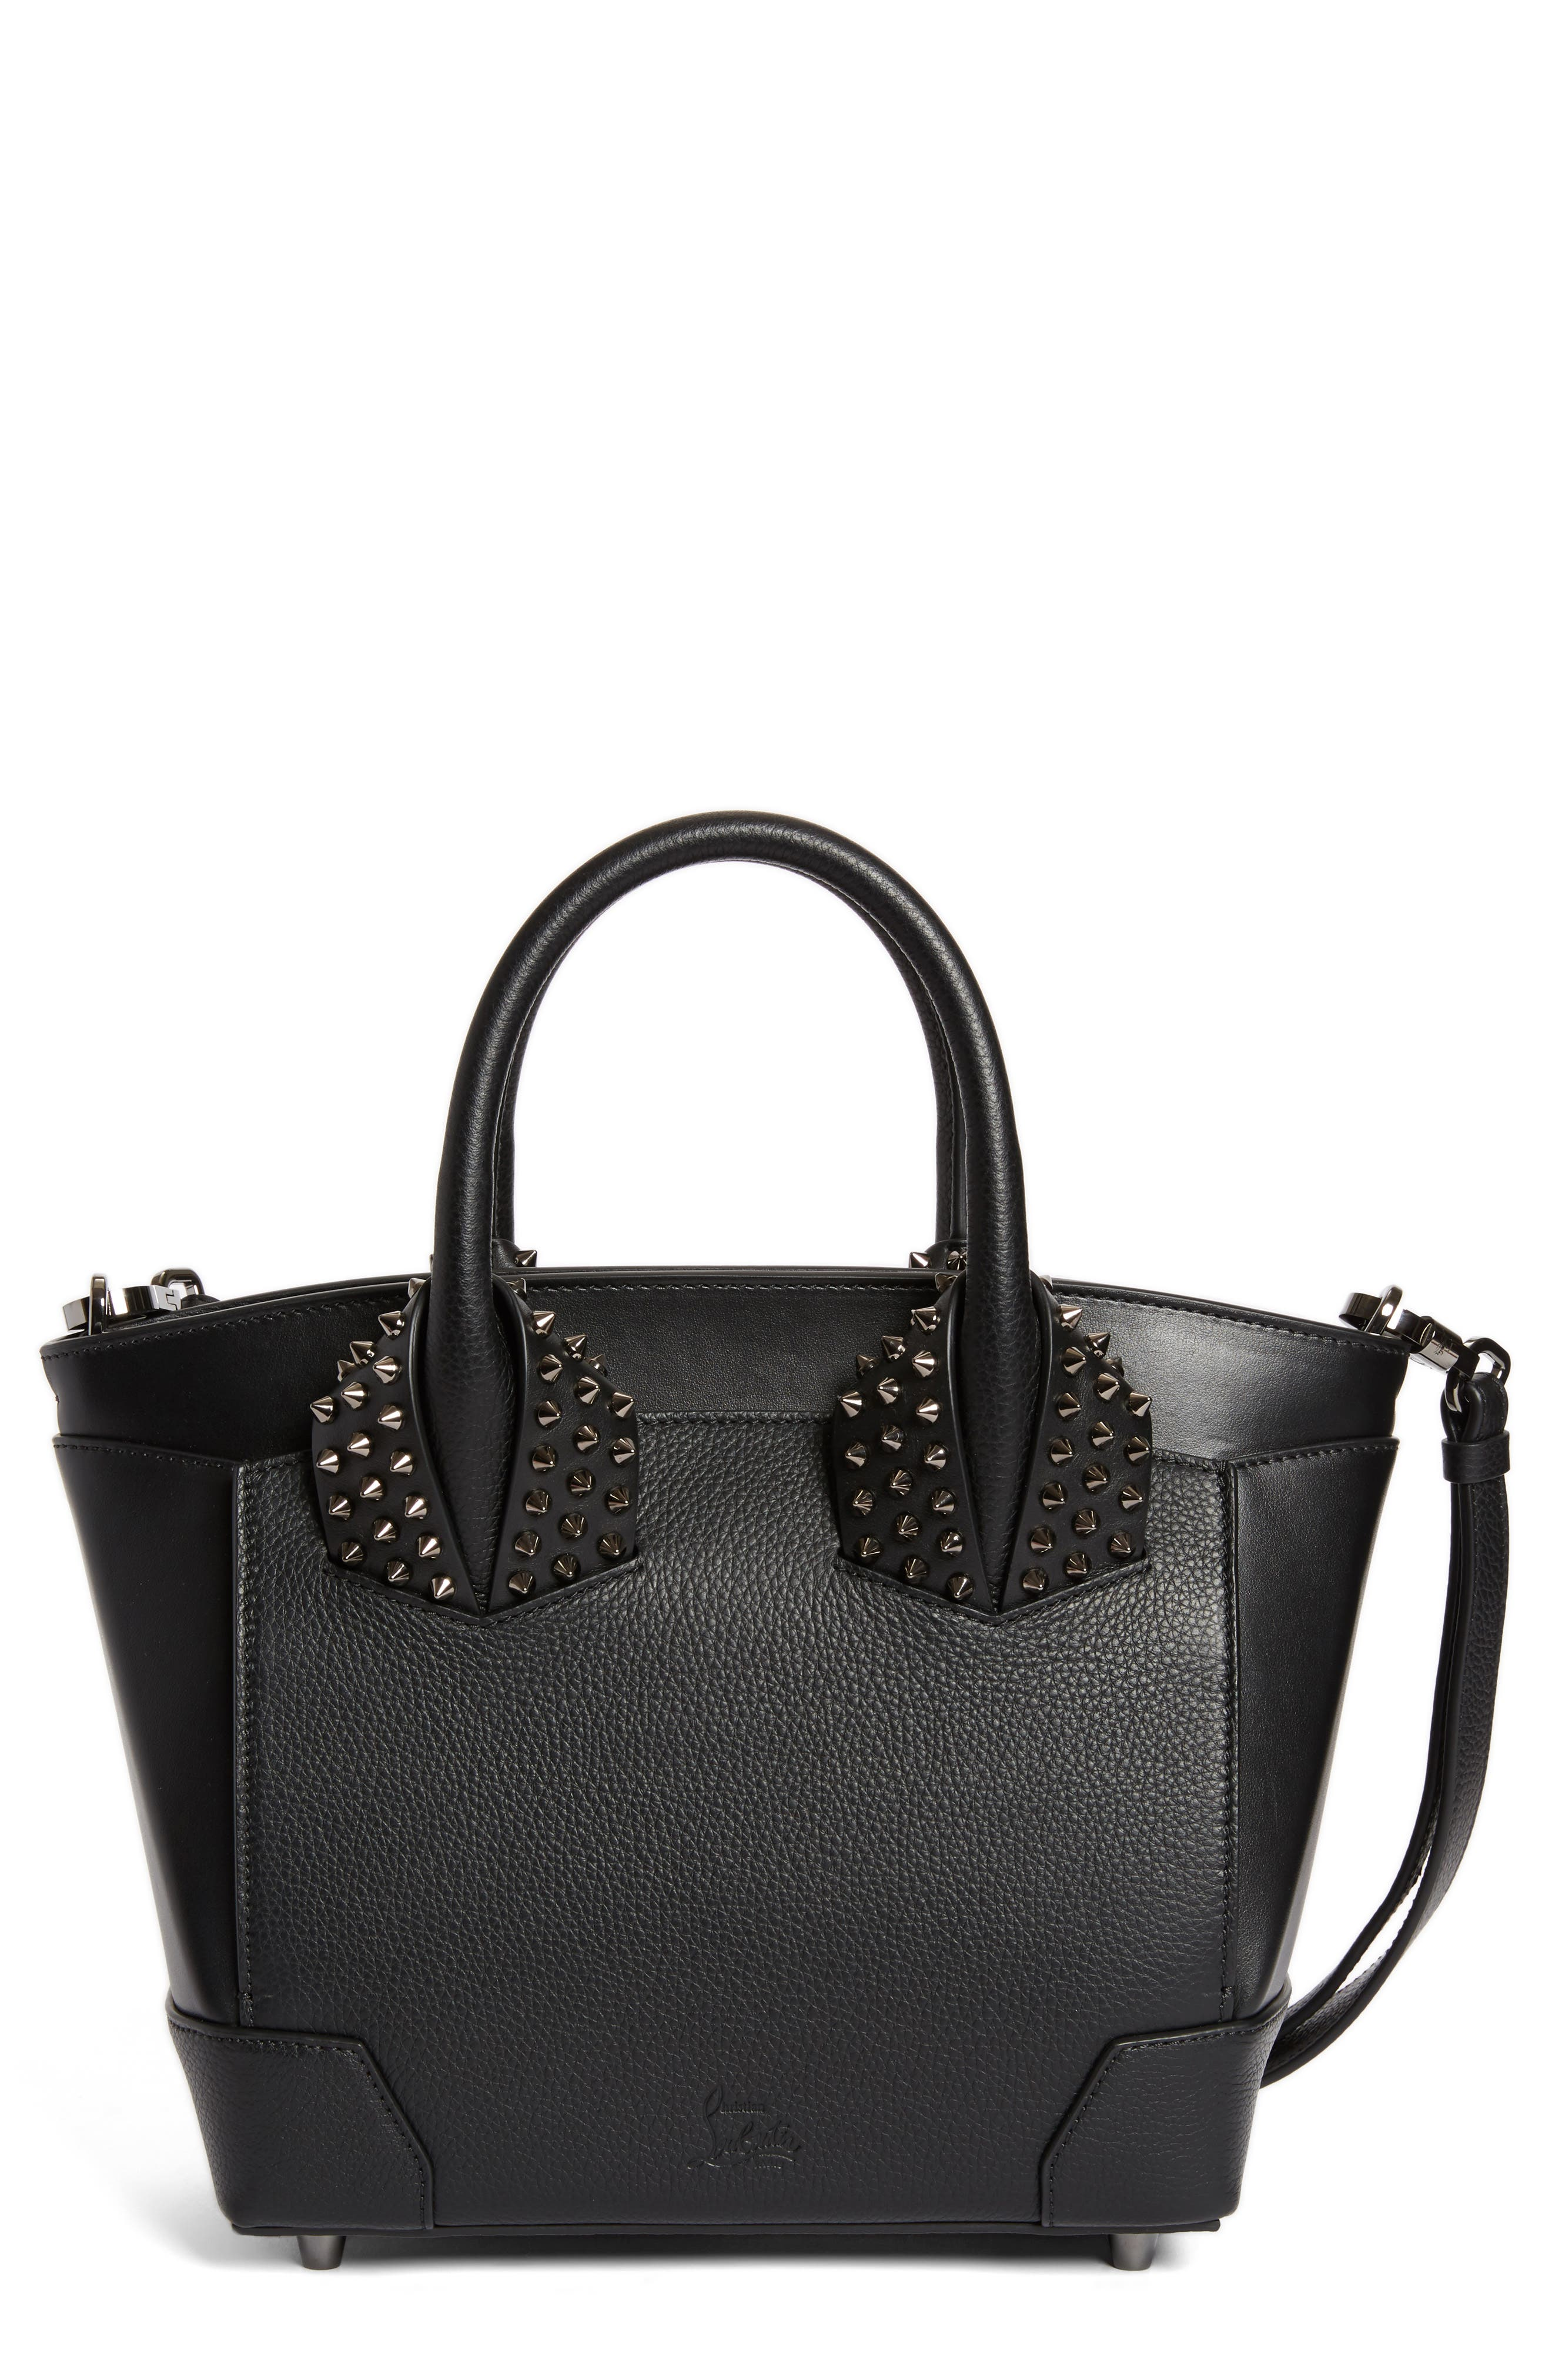 Alternate Image 1 Selected - Christian Louboutin Large Eloise Studded Calfskin Satchel